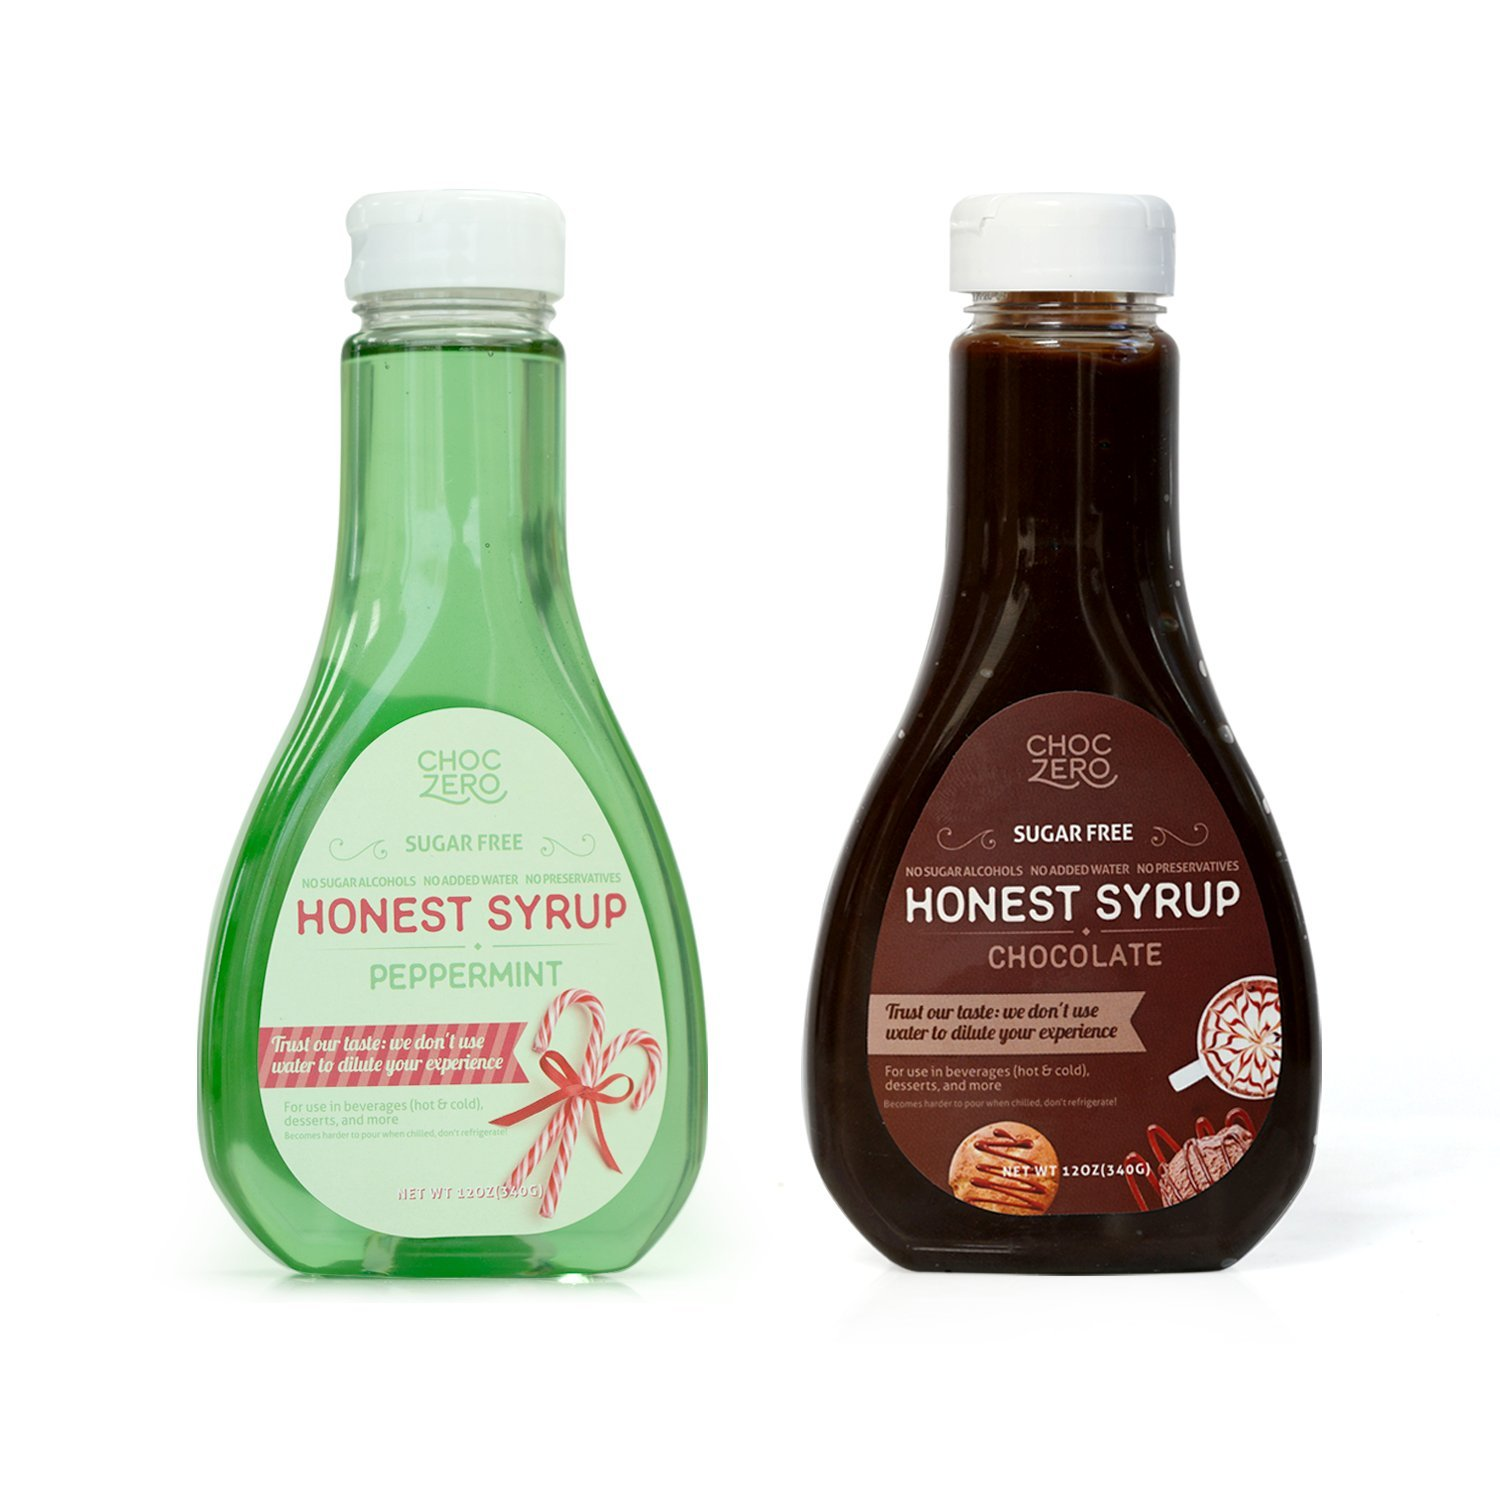 ChocZero's Chocolate Syrup and Peppermint Syrup. Sugar Free, Low Net Carb, No Preservatives. Gluten Free. No Sugar Alcohol. (2 Bottles)